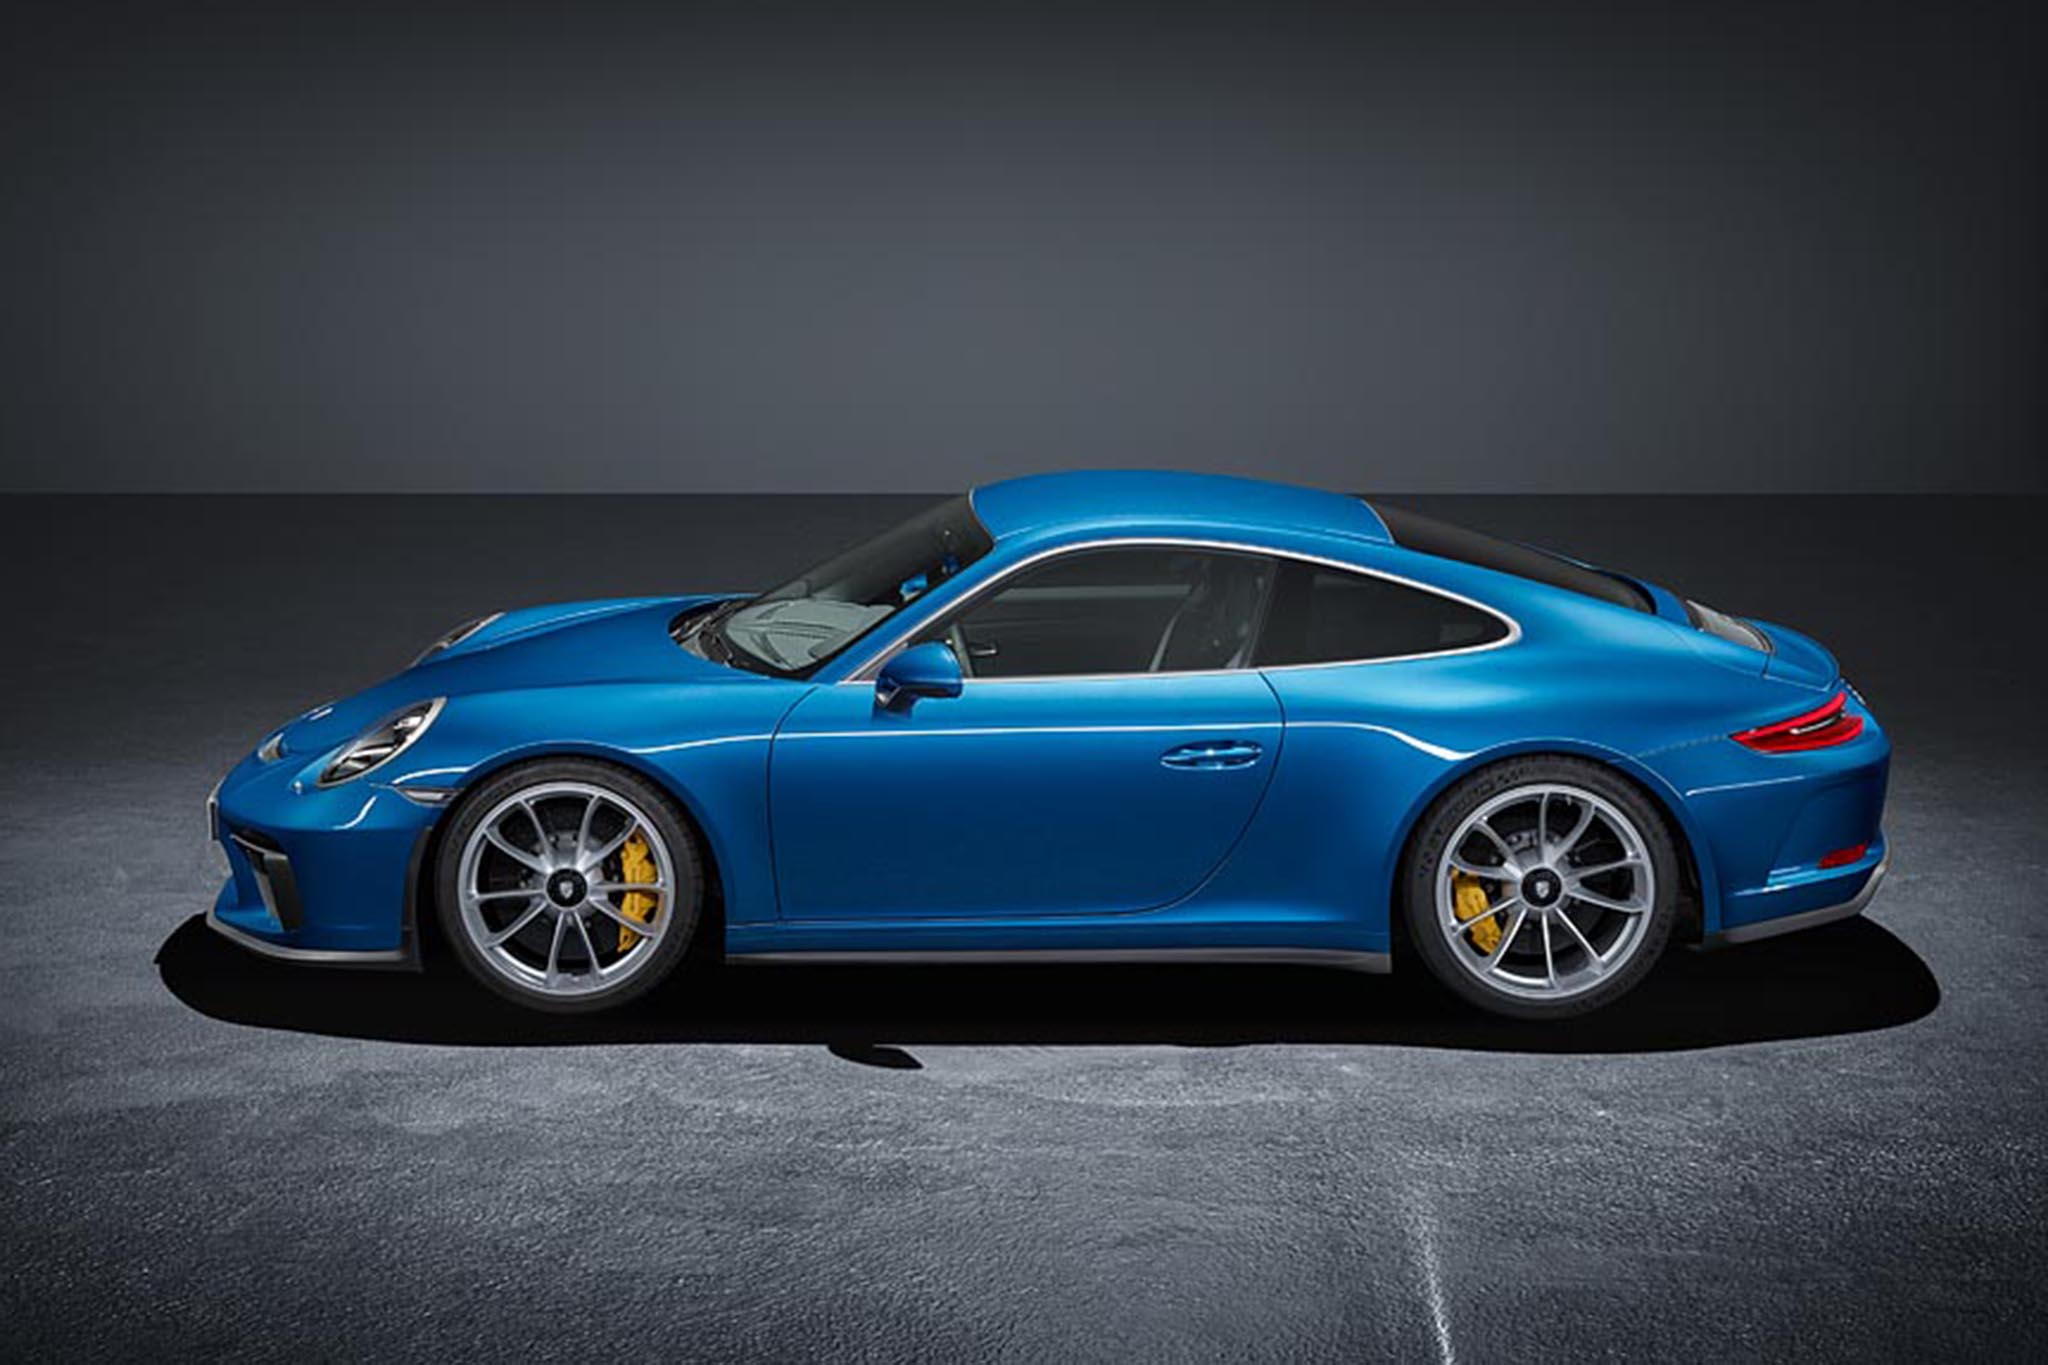 Photos of Rumored Porsche 911 GT3 Touring Spec Leak